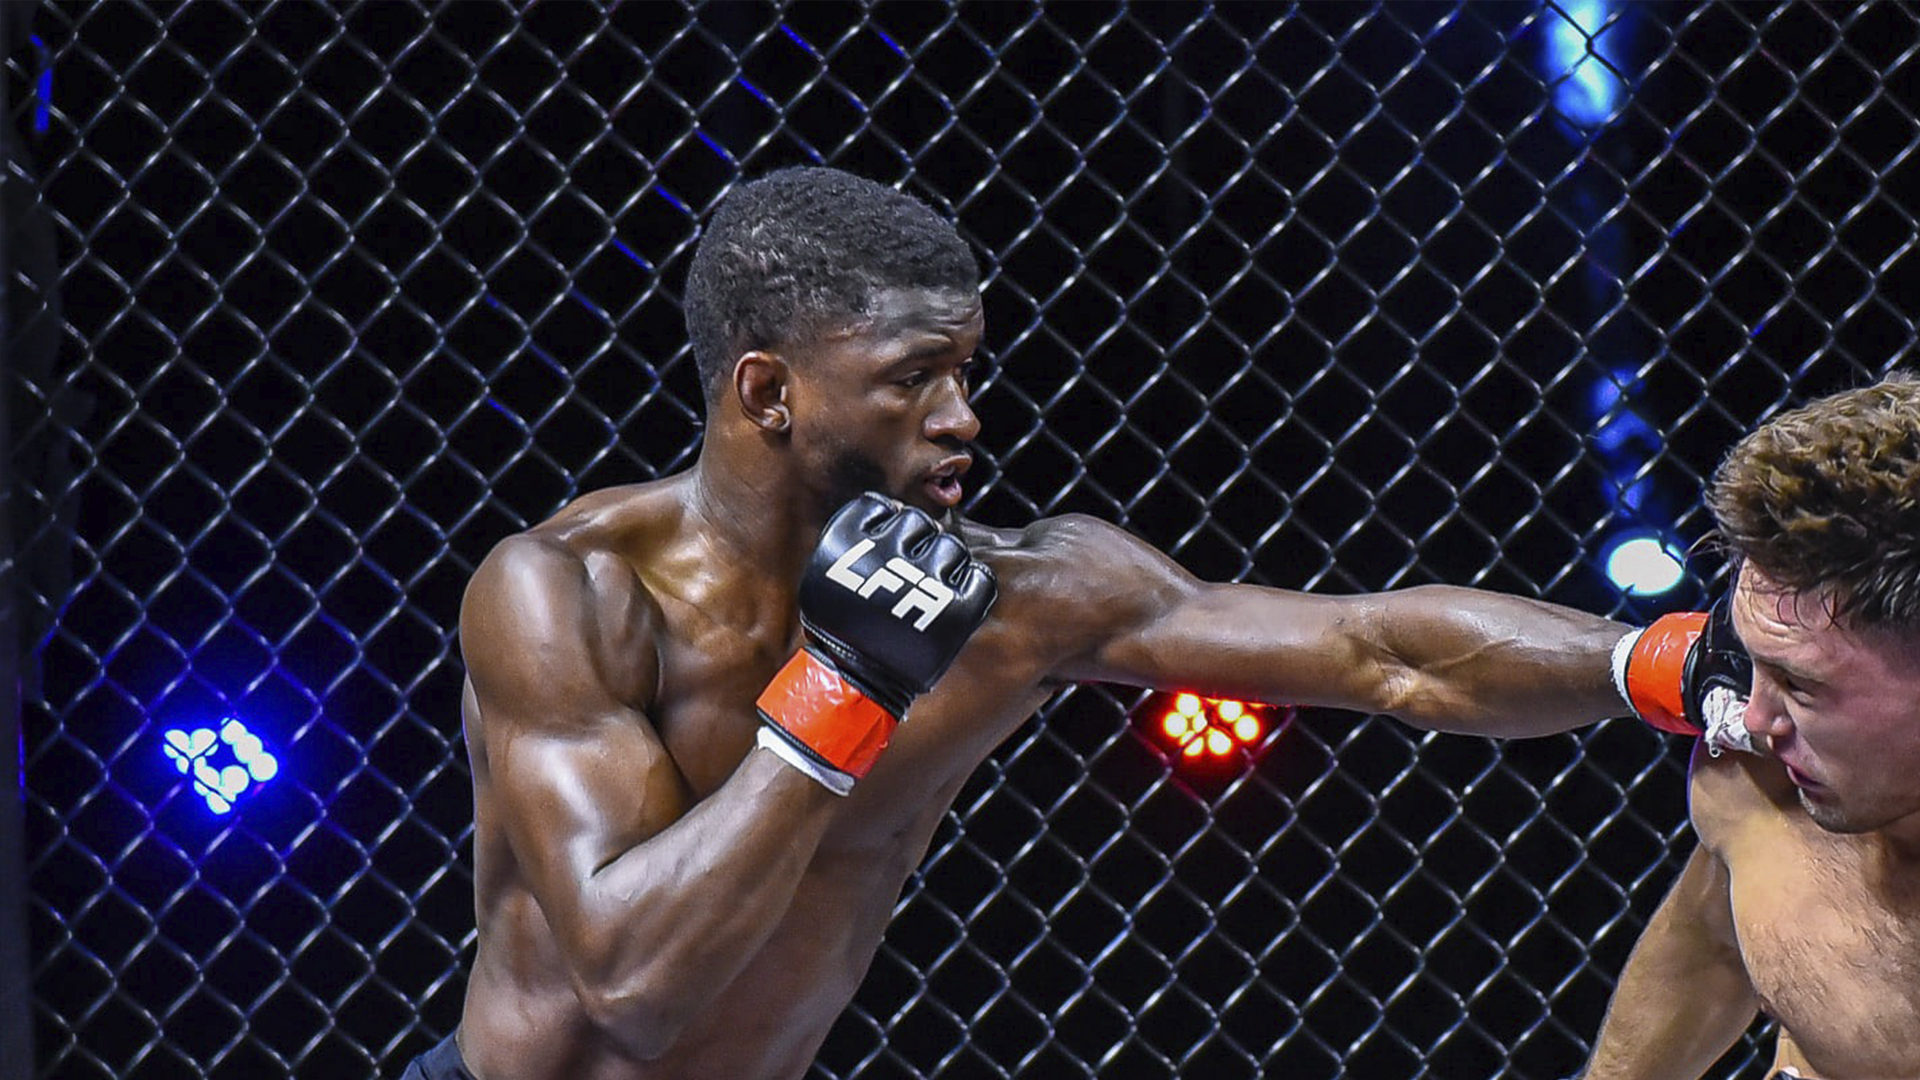 Edwin Cooper Jr. throws a punch during a fight in LFA (photo courtesy of LFA)